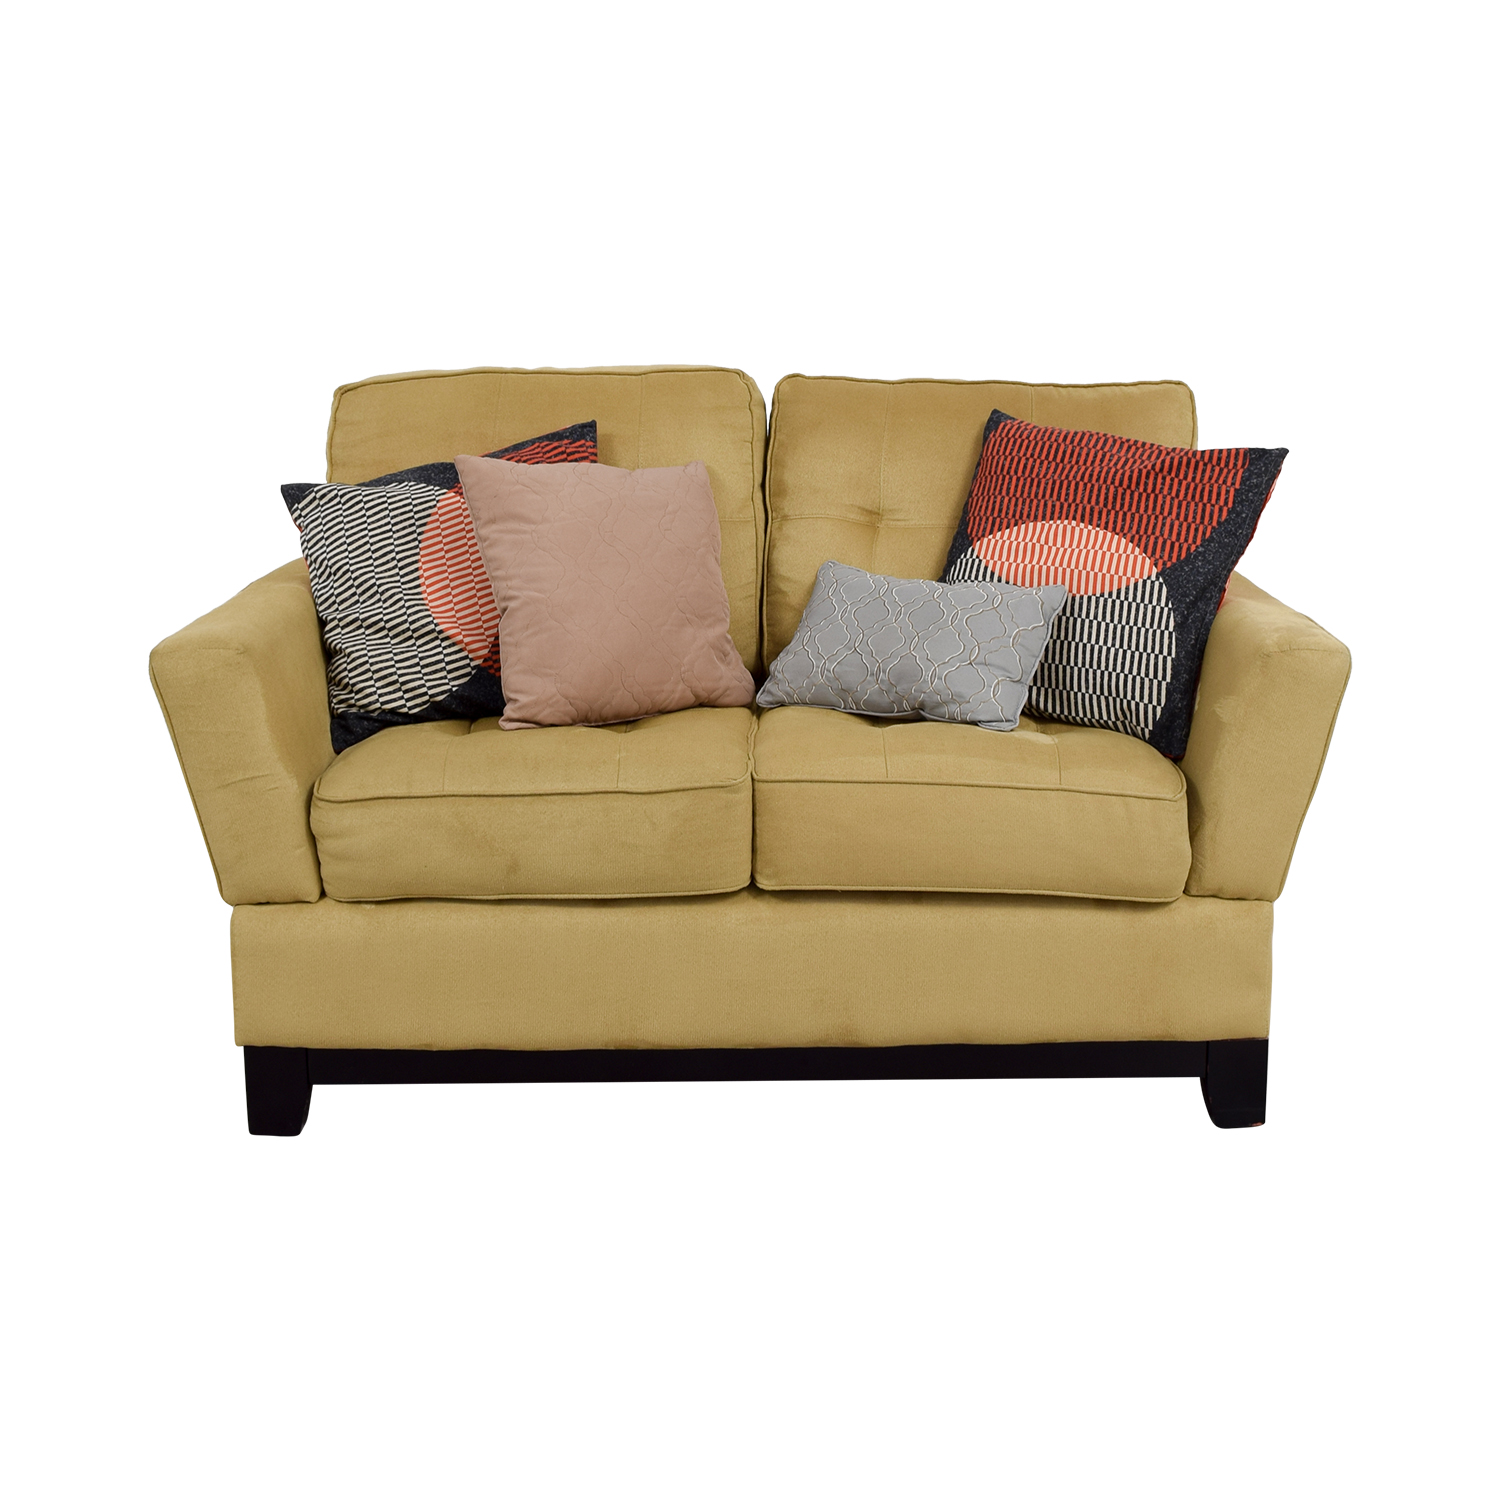 ashley furniture sofas vine sofa yellow tailya by